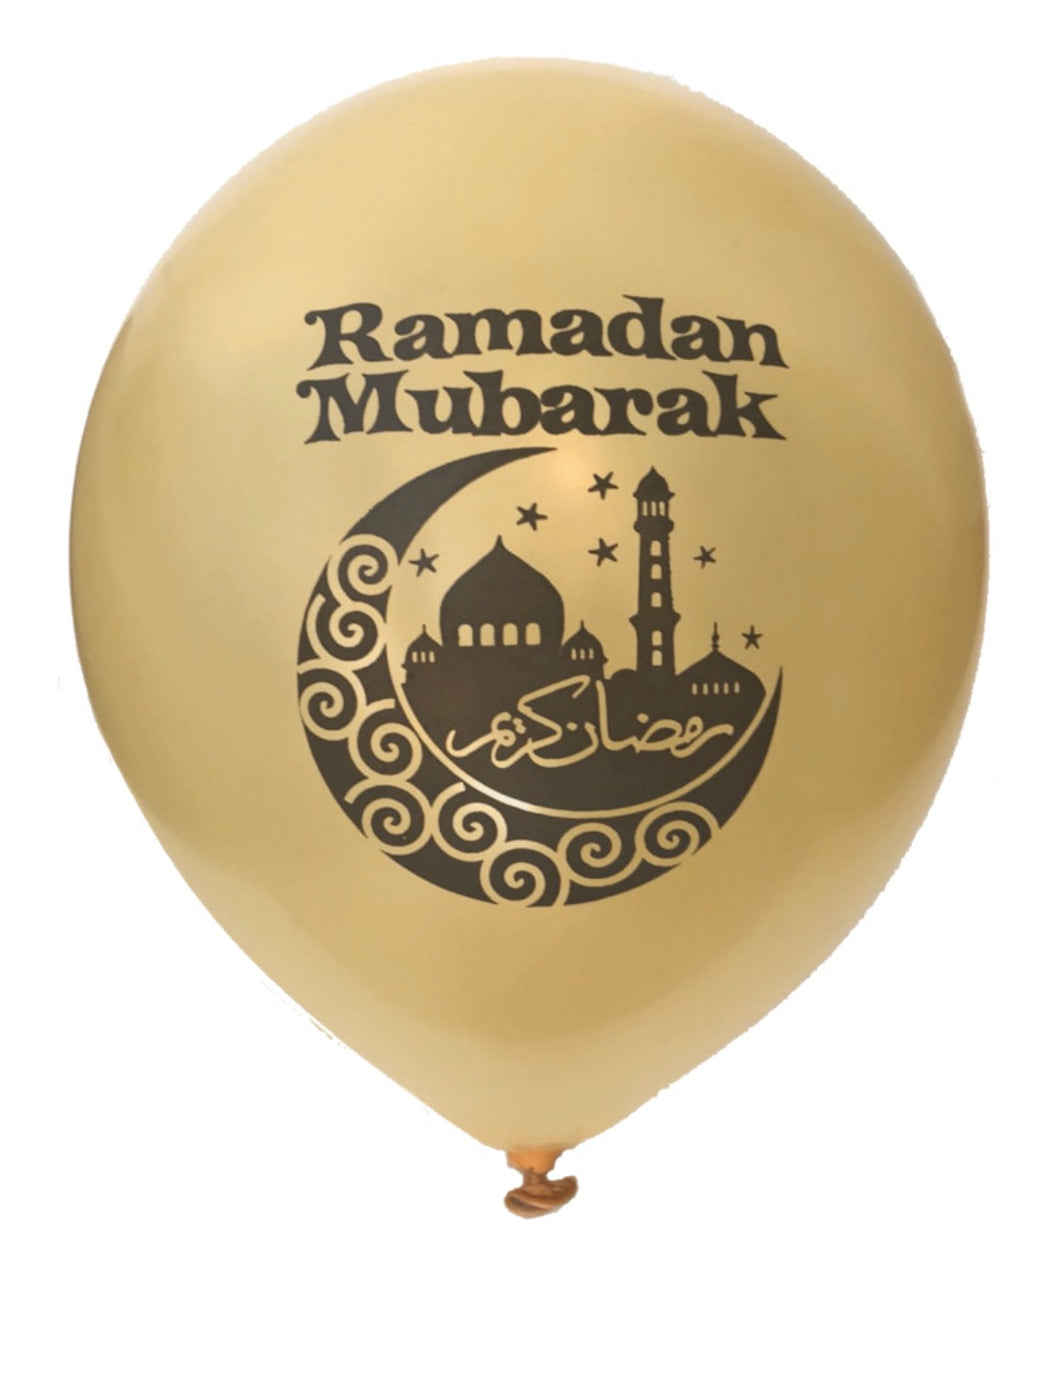 Ramadan Mubarak Balloons in English & Arabic (Set of 12)